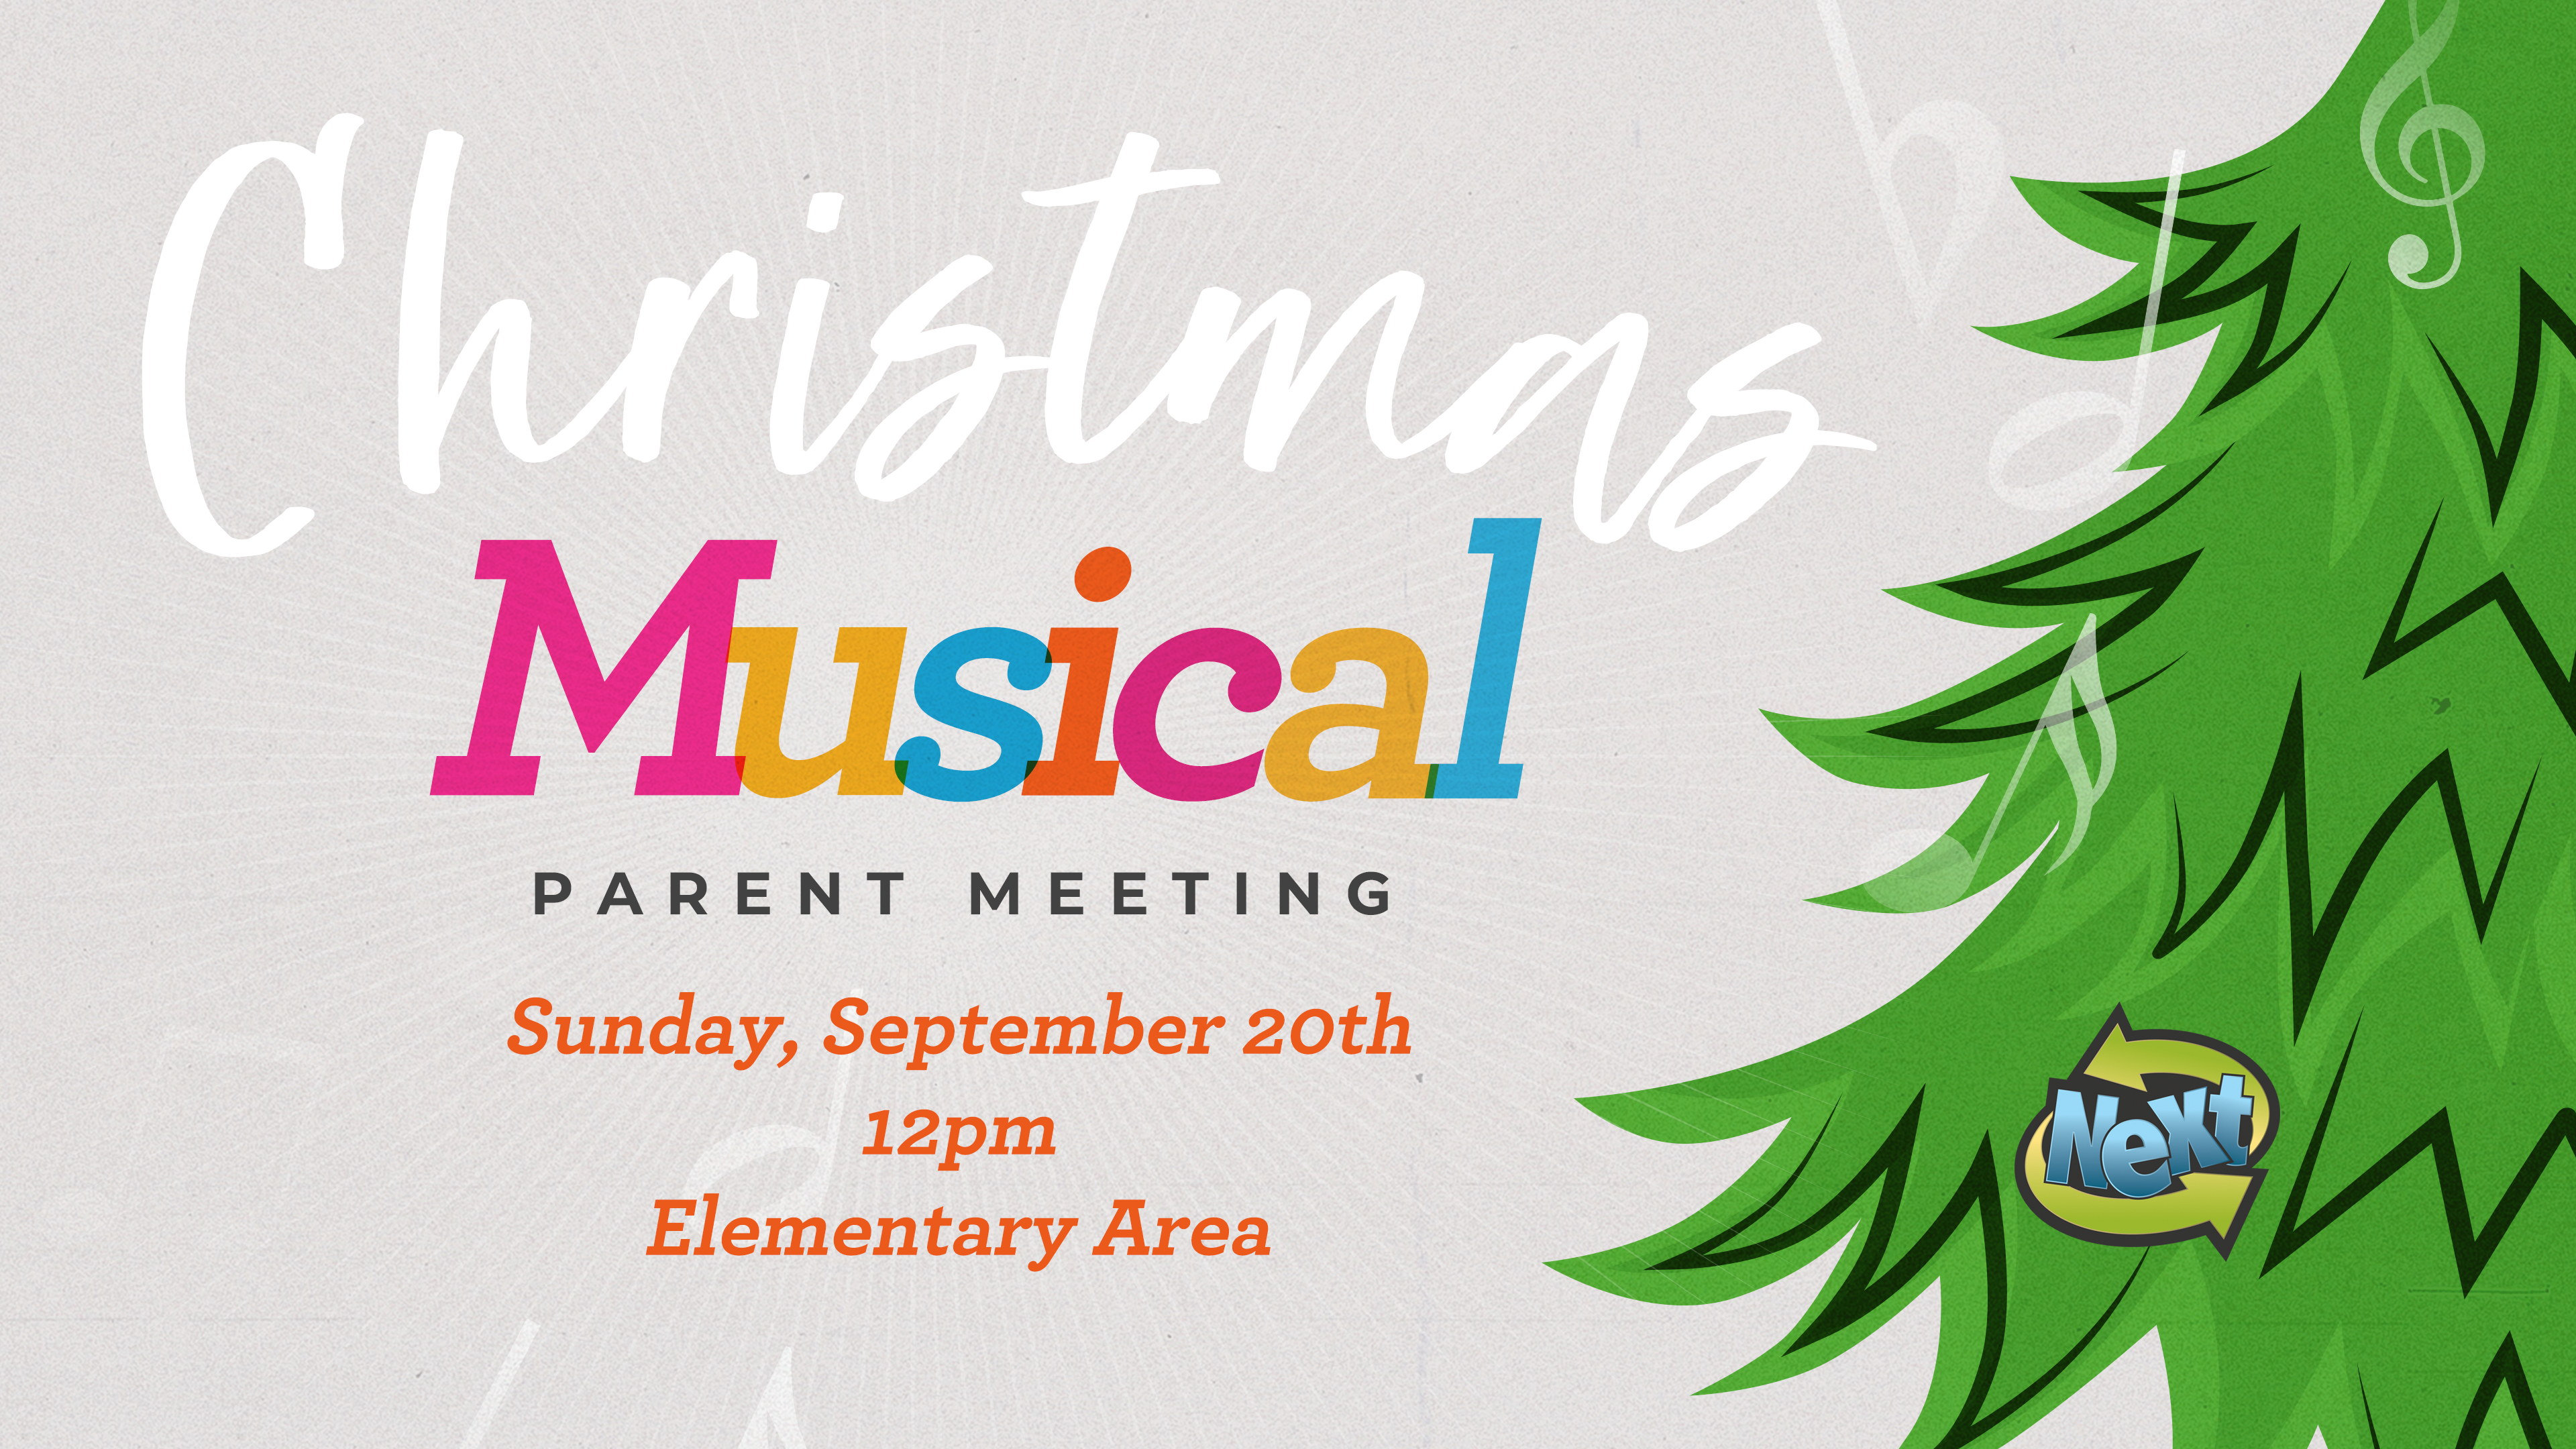 Christmas Musical Graphic 2020- Parent Meeting image